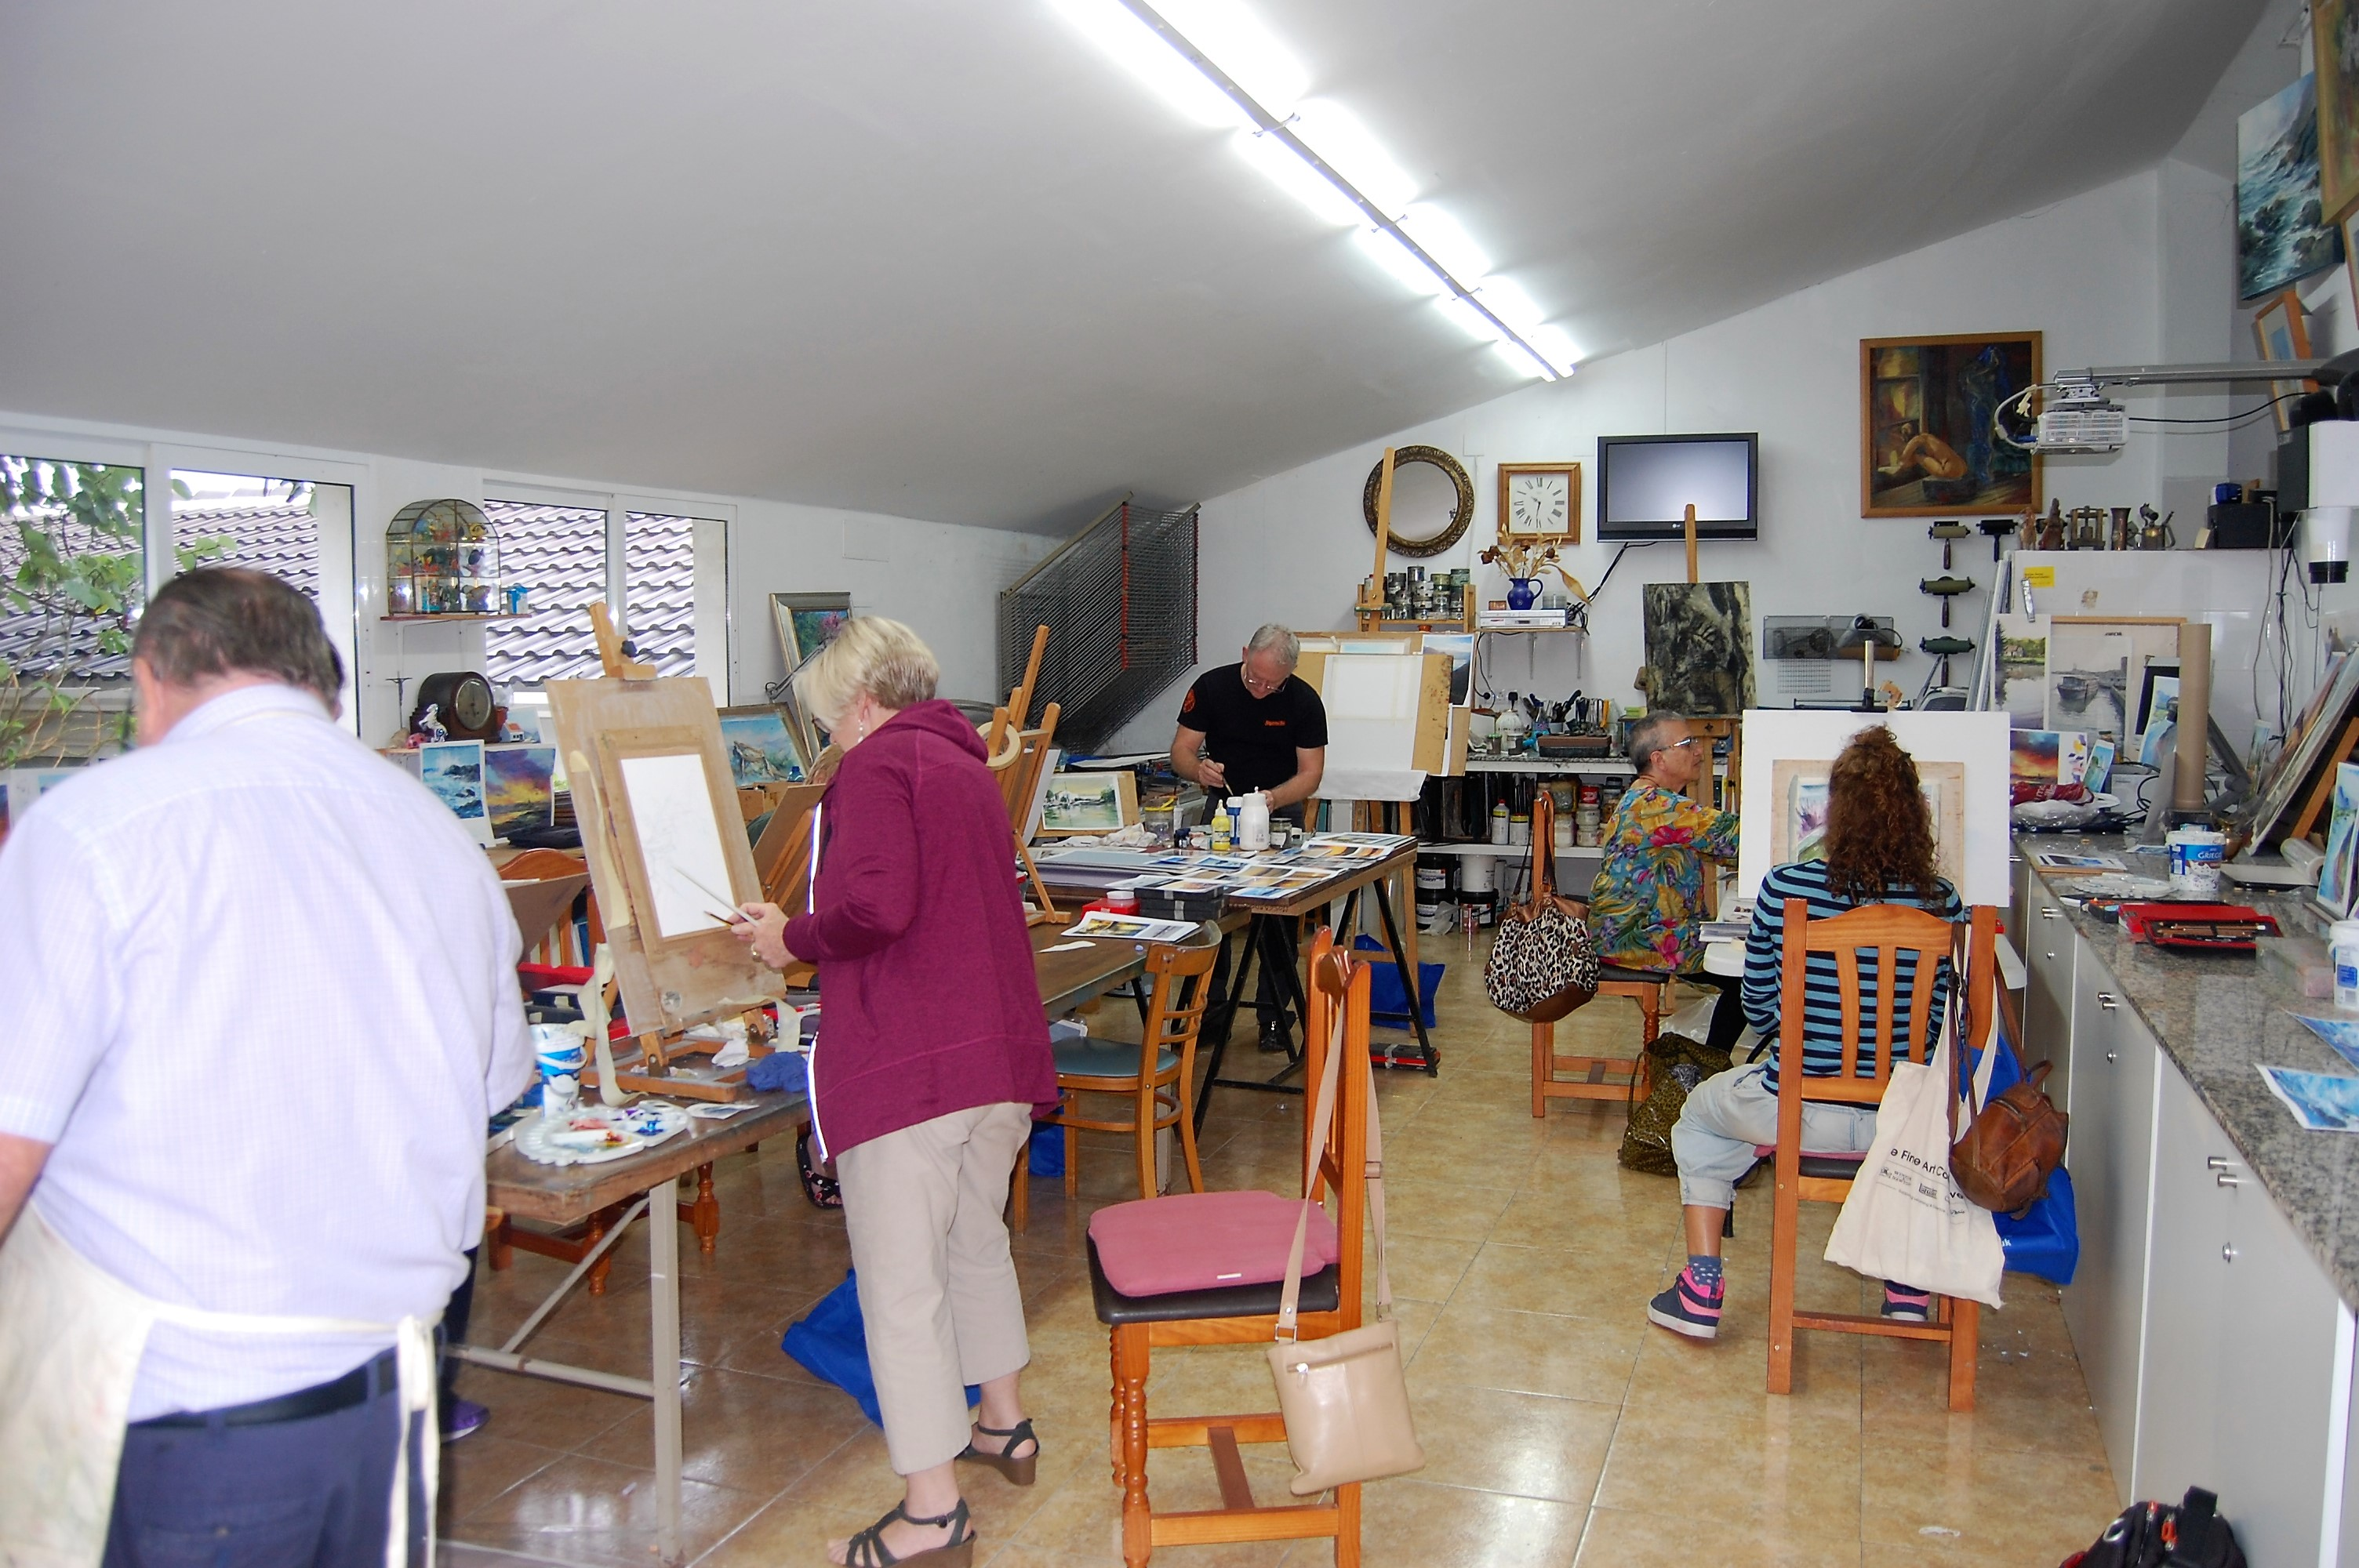 tutored art classes and workshops vacations www.paintonholiday.com